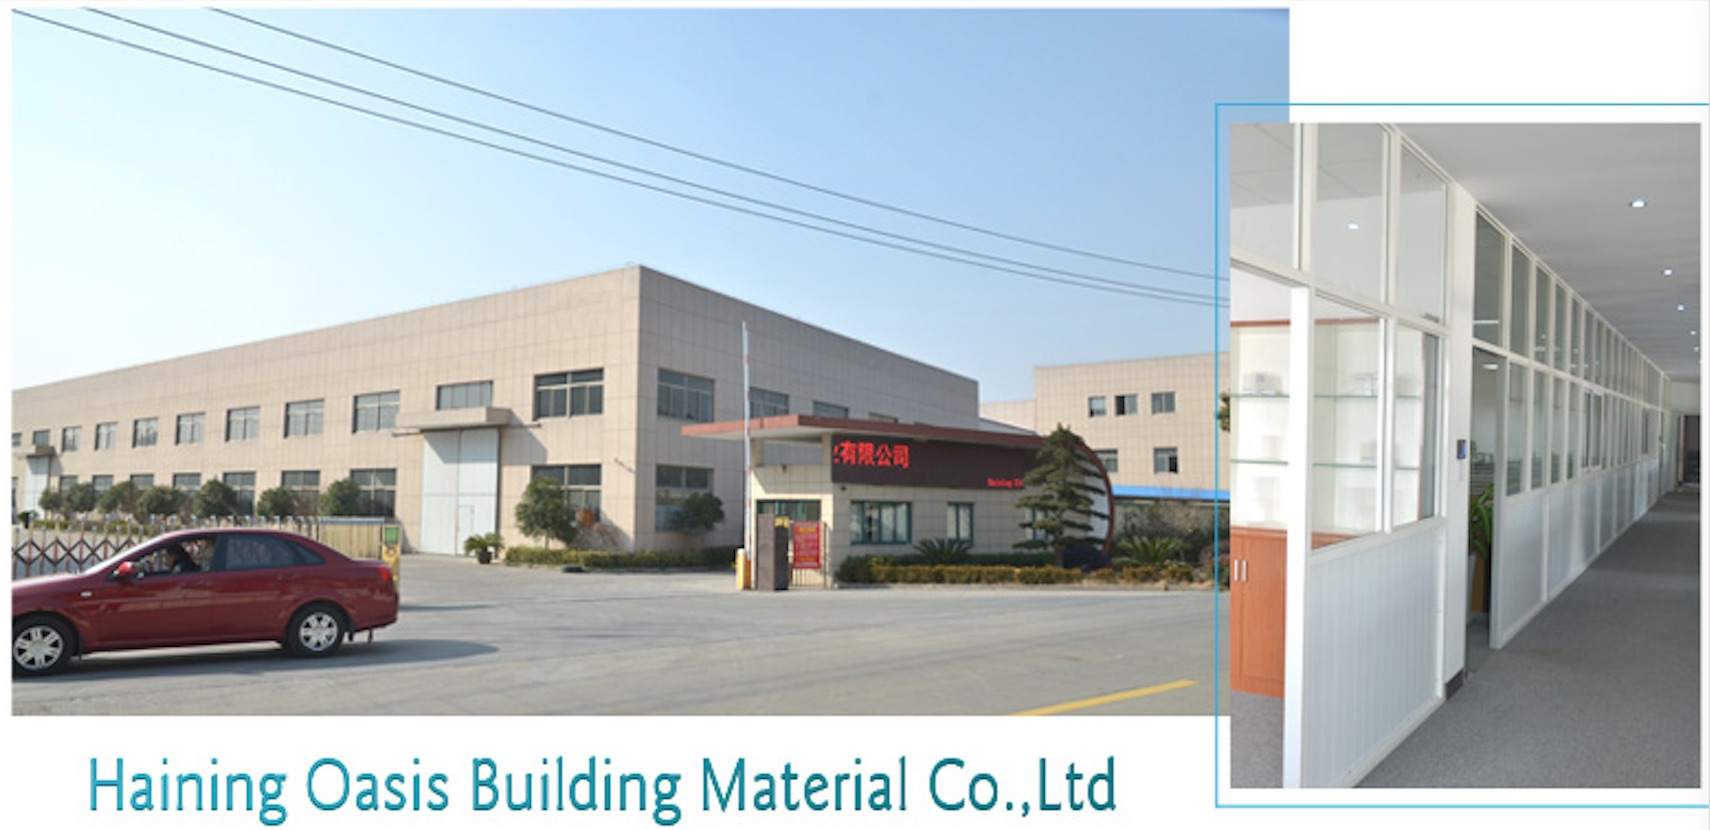 Haining Oasis Building Material Co., Ltd.